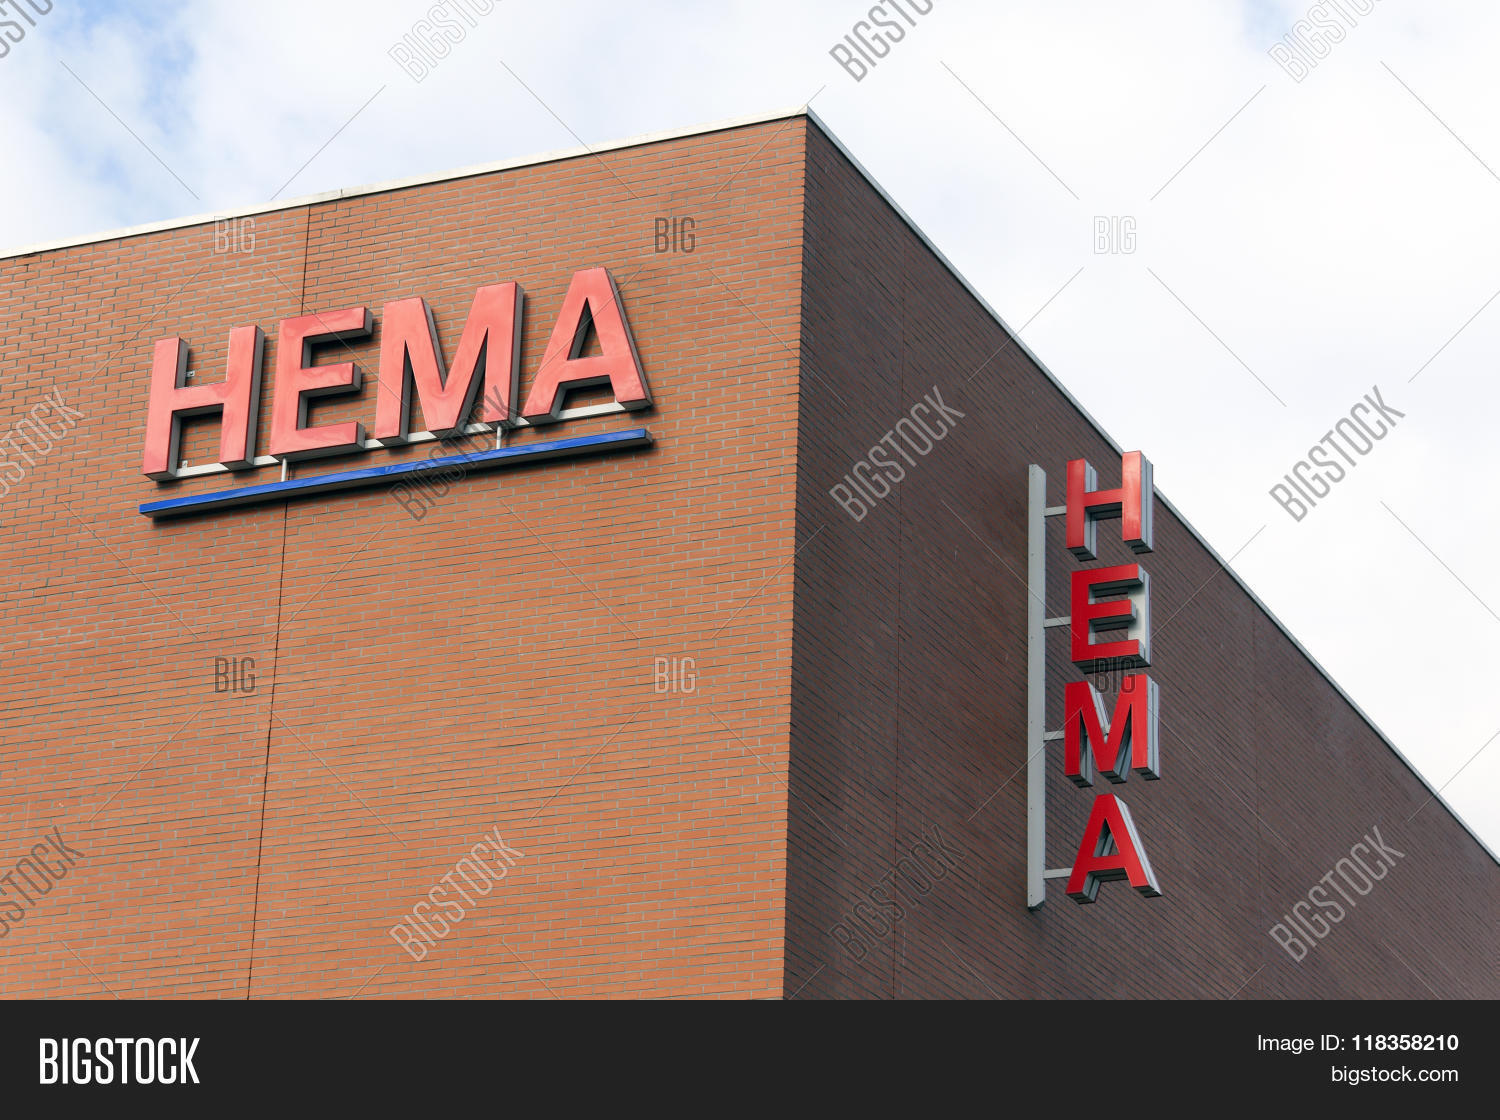 Hema Letters On Wall Image & Photo (Free Trial)   Bigstock